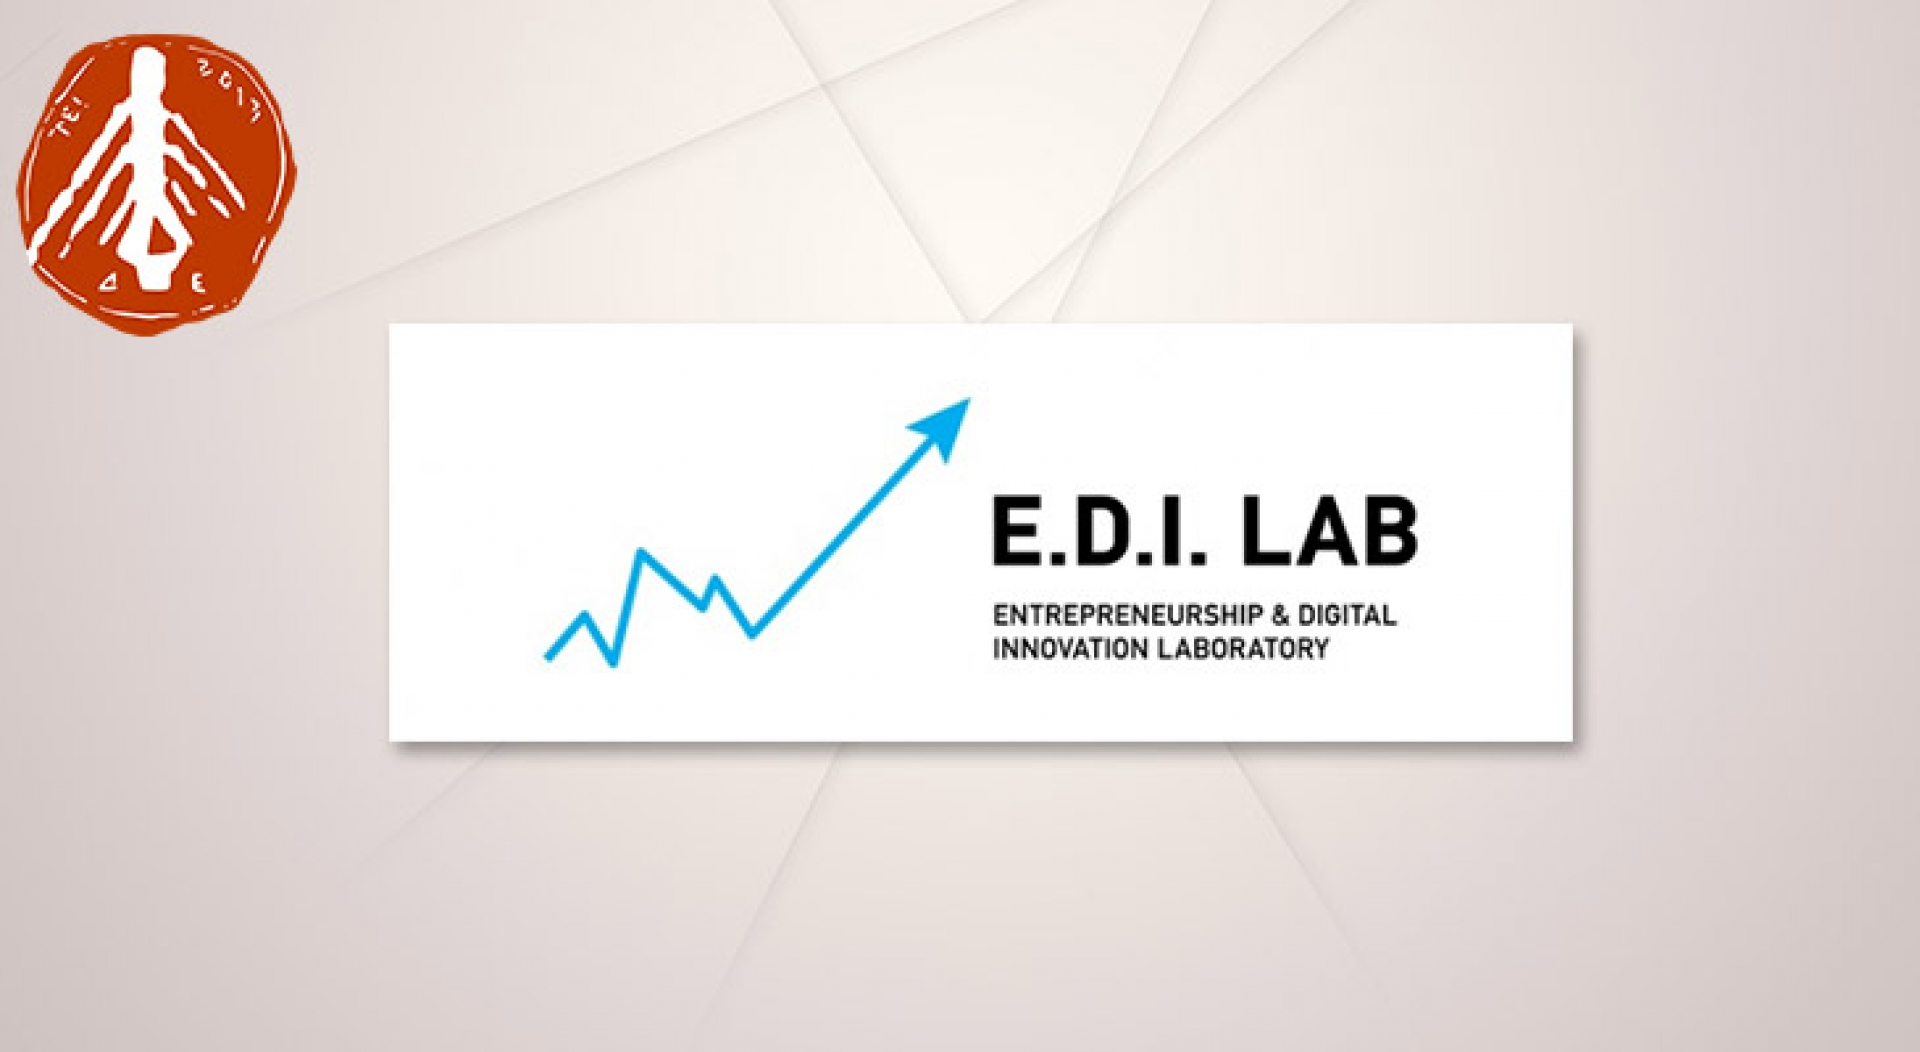 Entrepreneurship & Digital Innovation Laboratory (E.D.I. LAB)